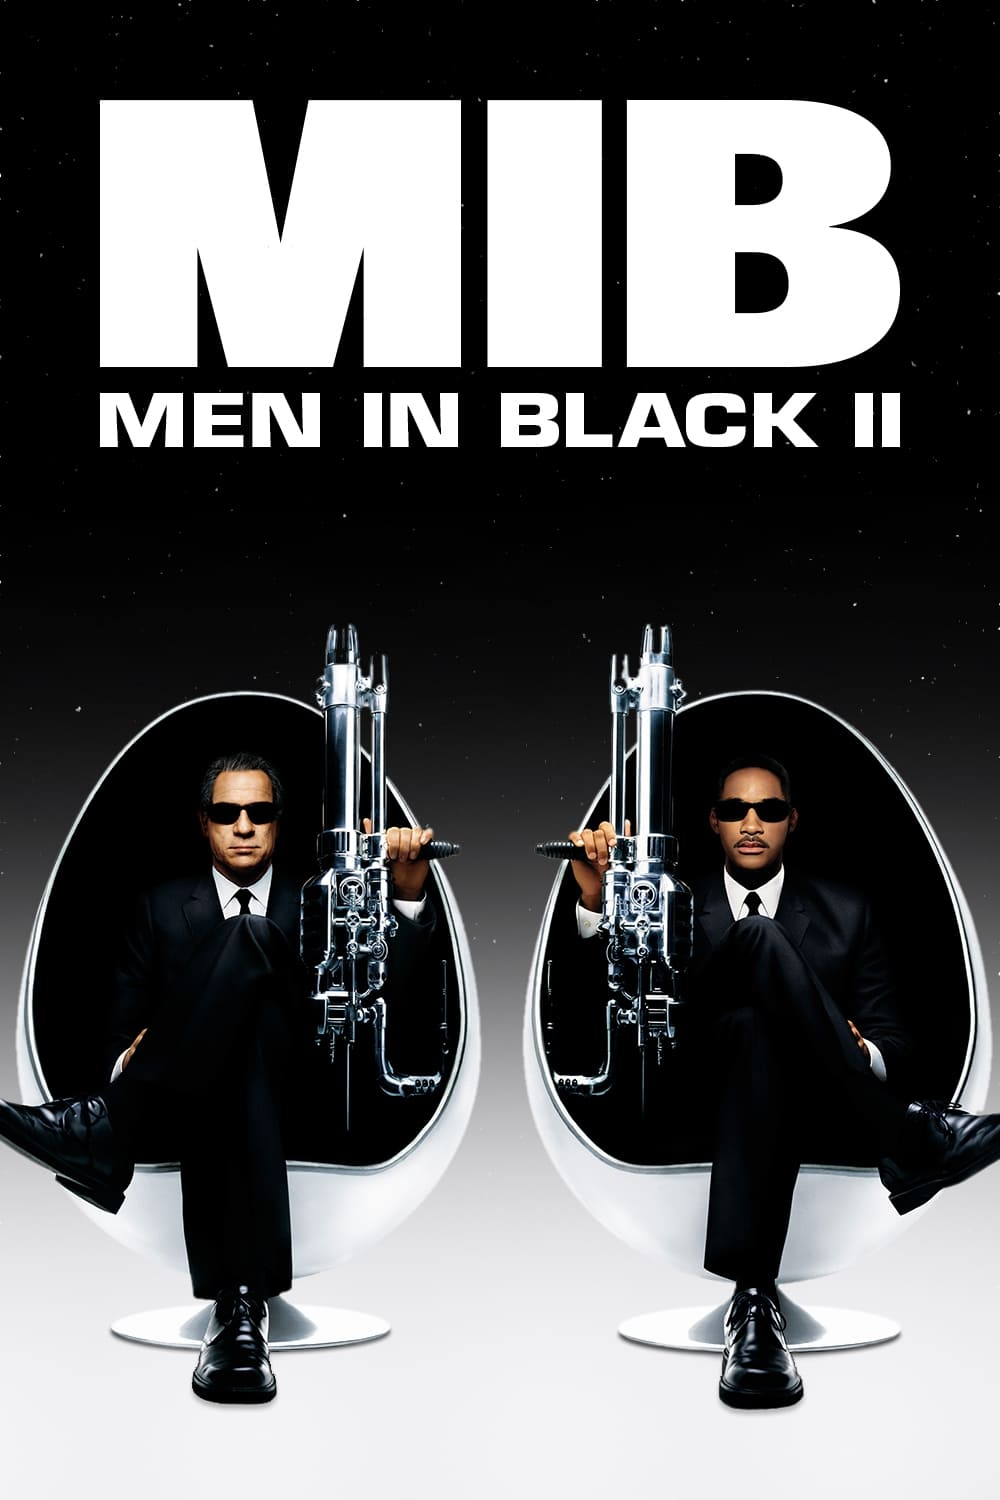 Men in Black II (2002) questions - moviemistakes.com